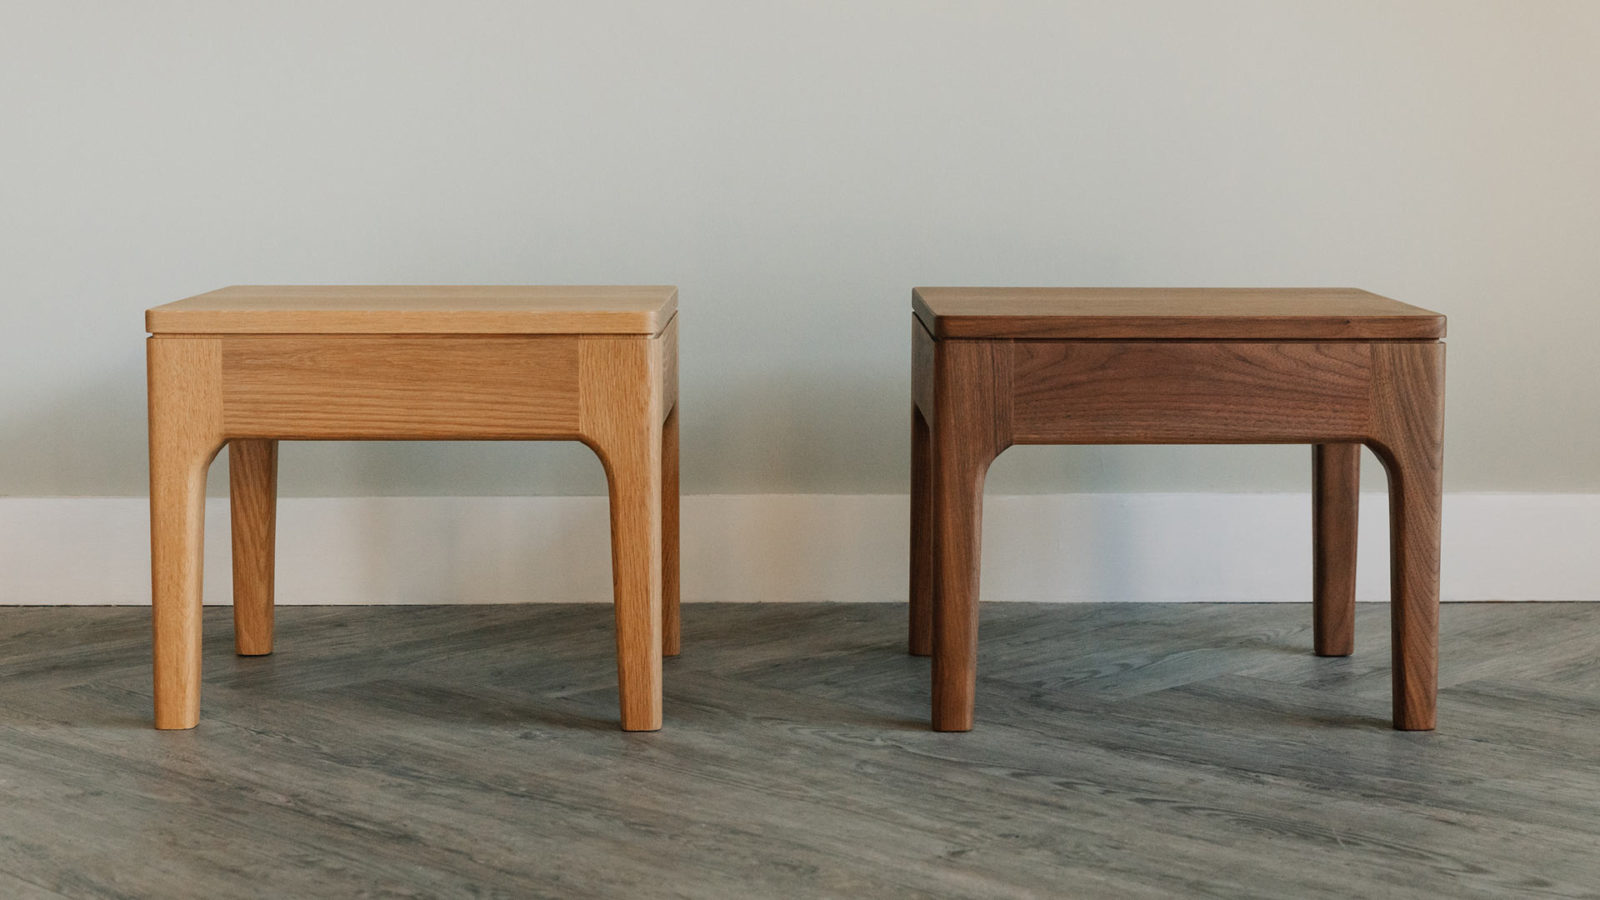 Bedside tables in oak and walnut designed to complement our Camden and Hoxton beds